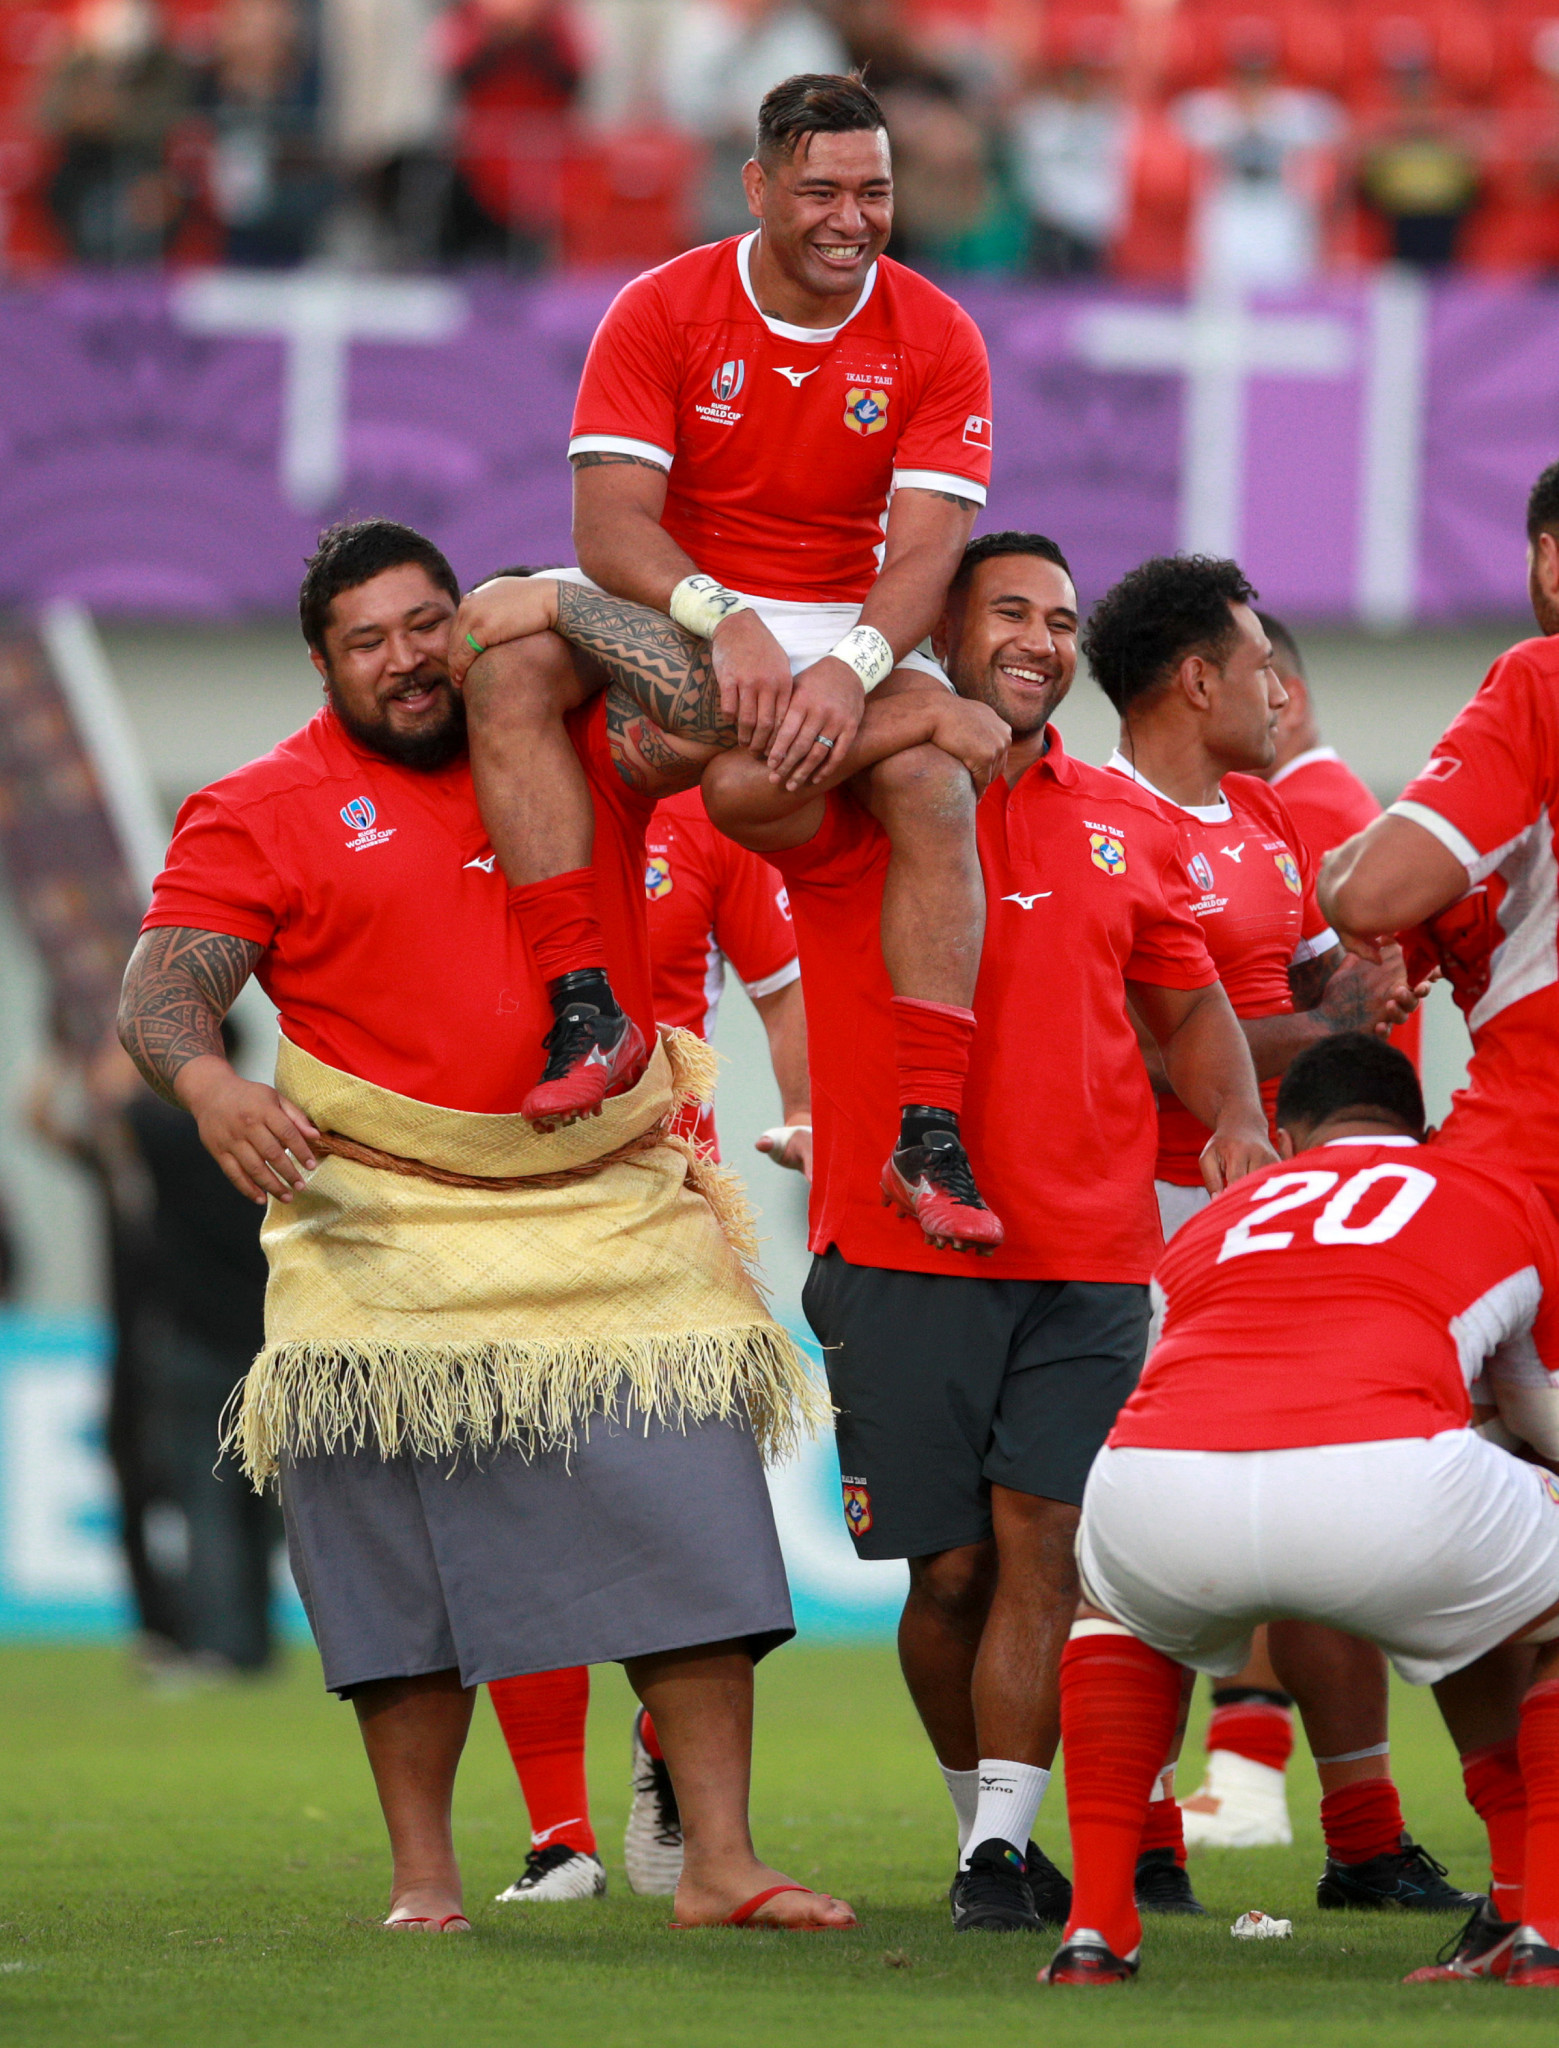 Siale Piutau of Tonga is carried off the pitch after his country's 31-19 win against the United States ©Getty Images